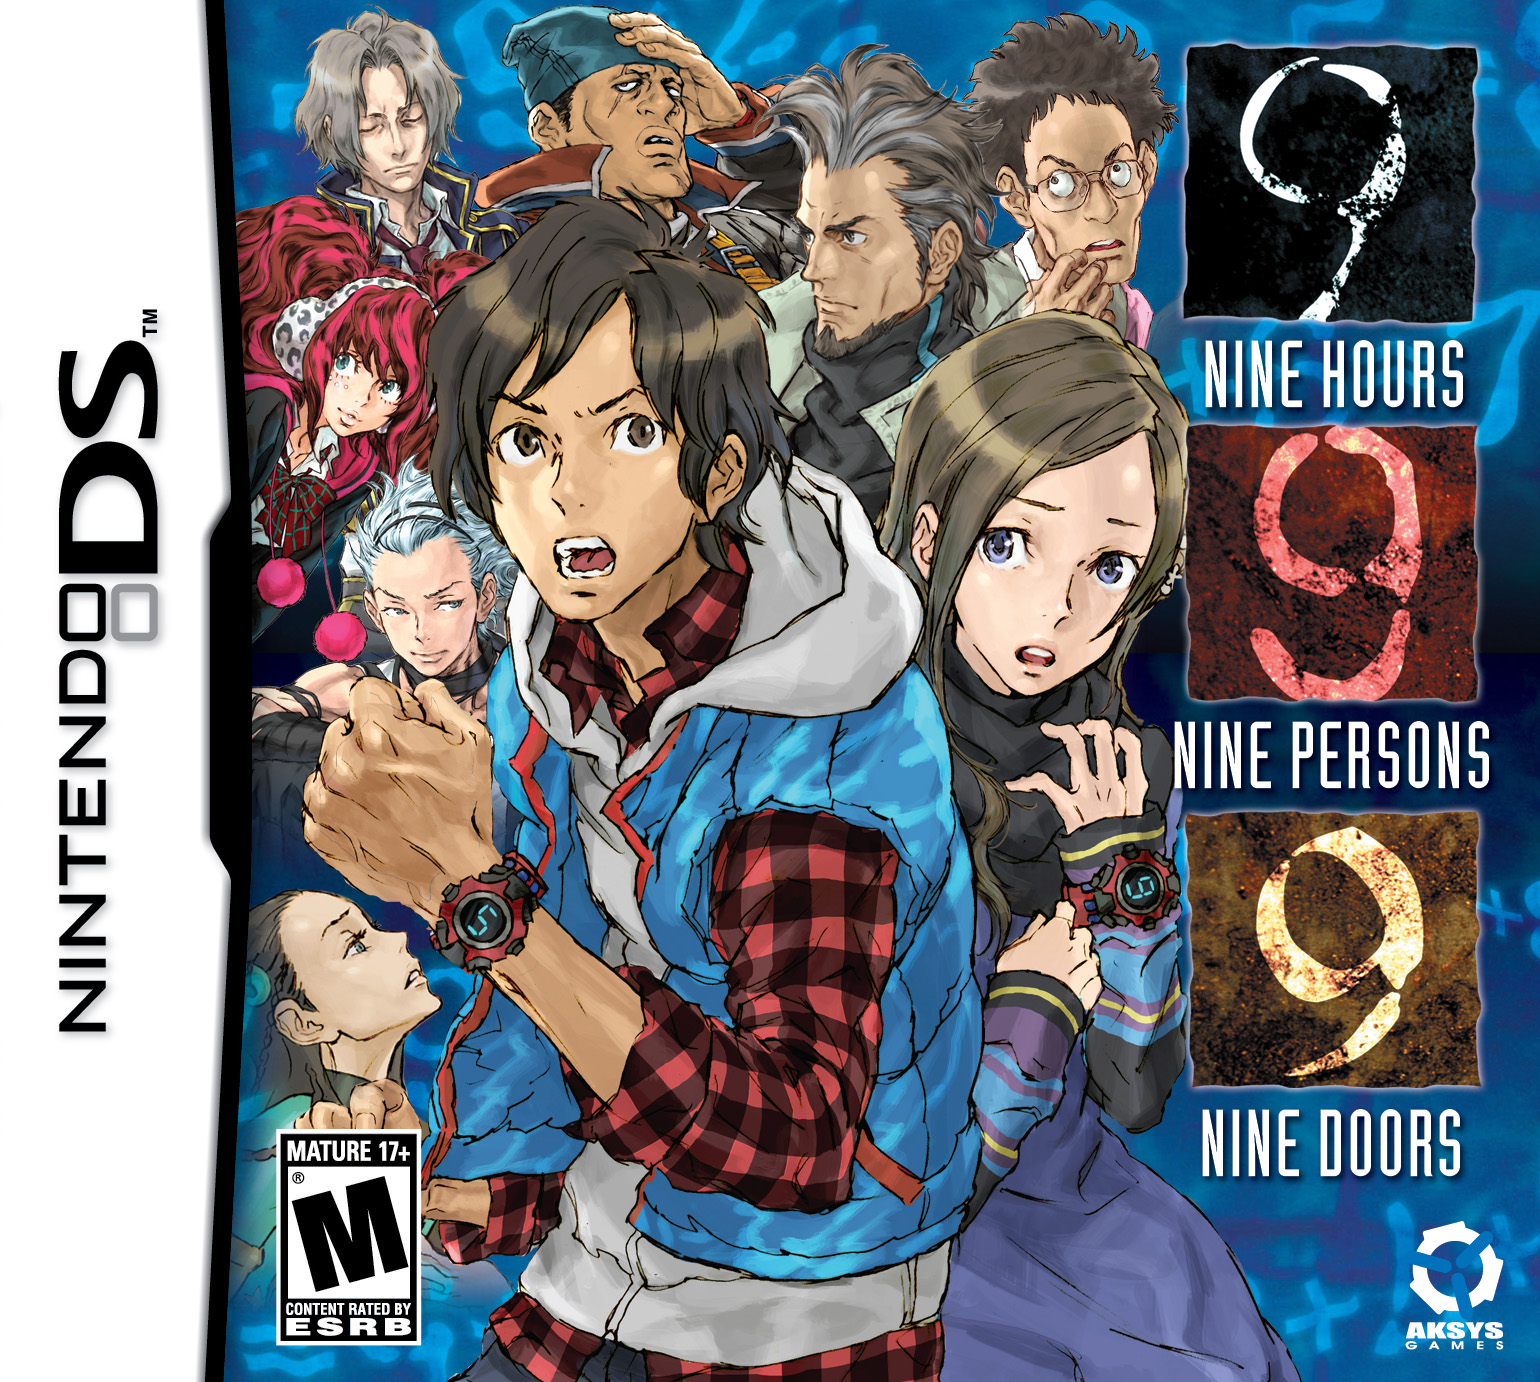 999 Games Spoiler Free Review Of 9 Hours 9 Persons 9 Doors The